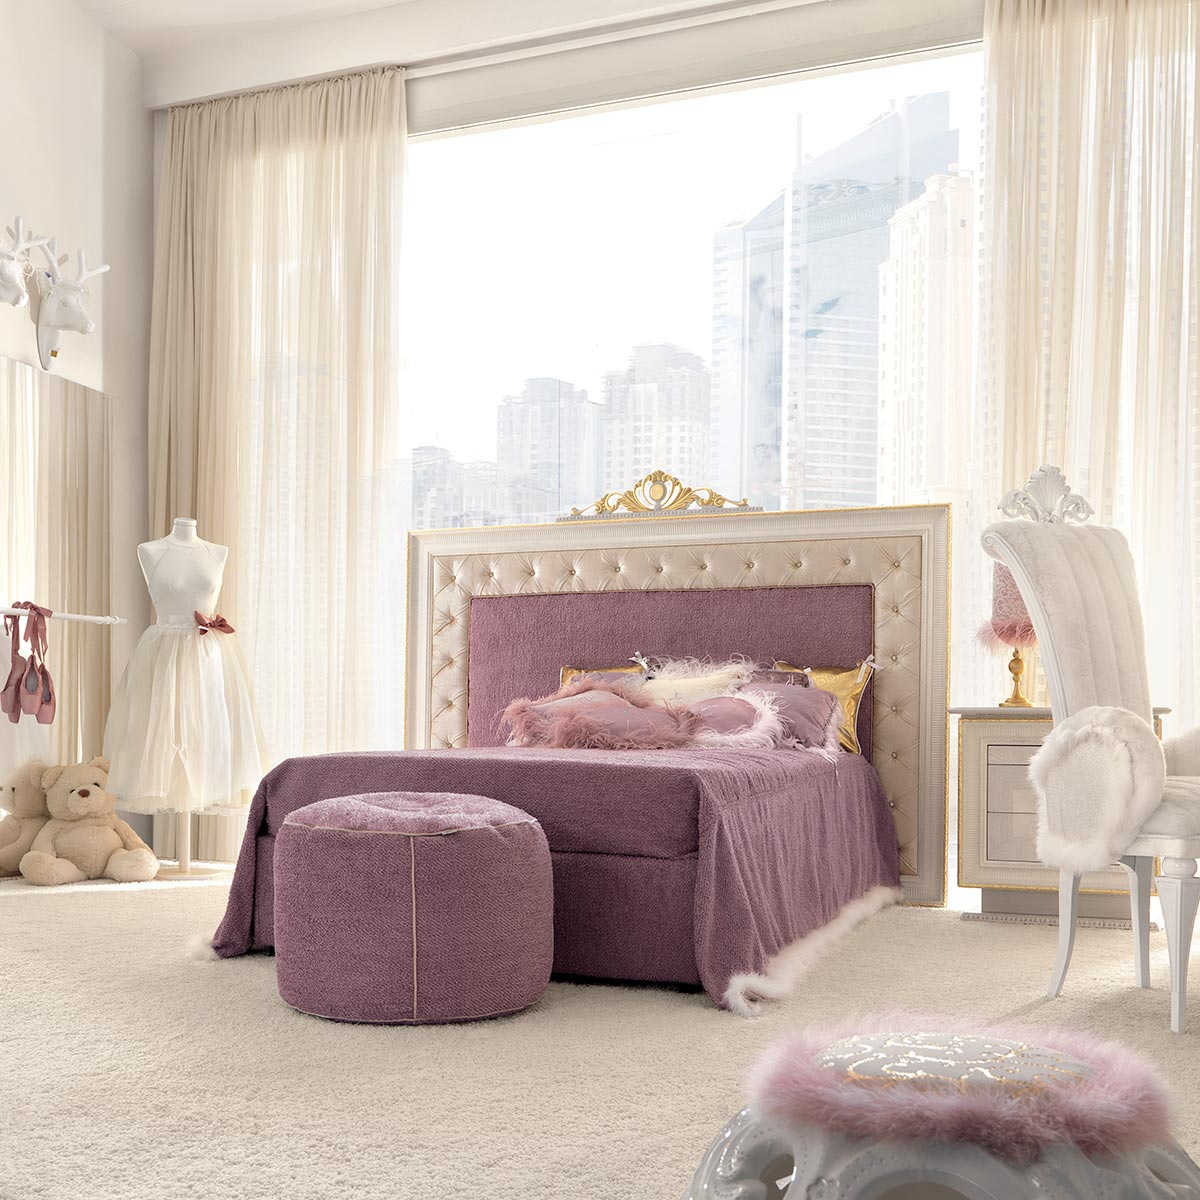 Gigi Brooks The Beauty of a Bespoke Children's Bed